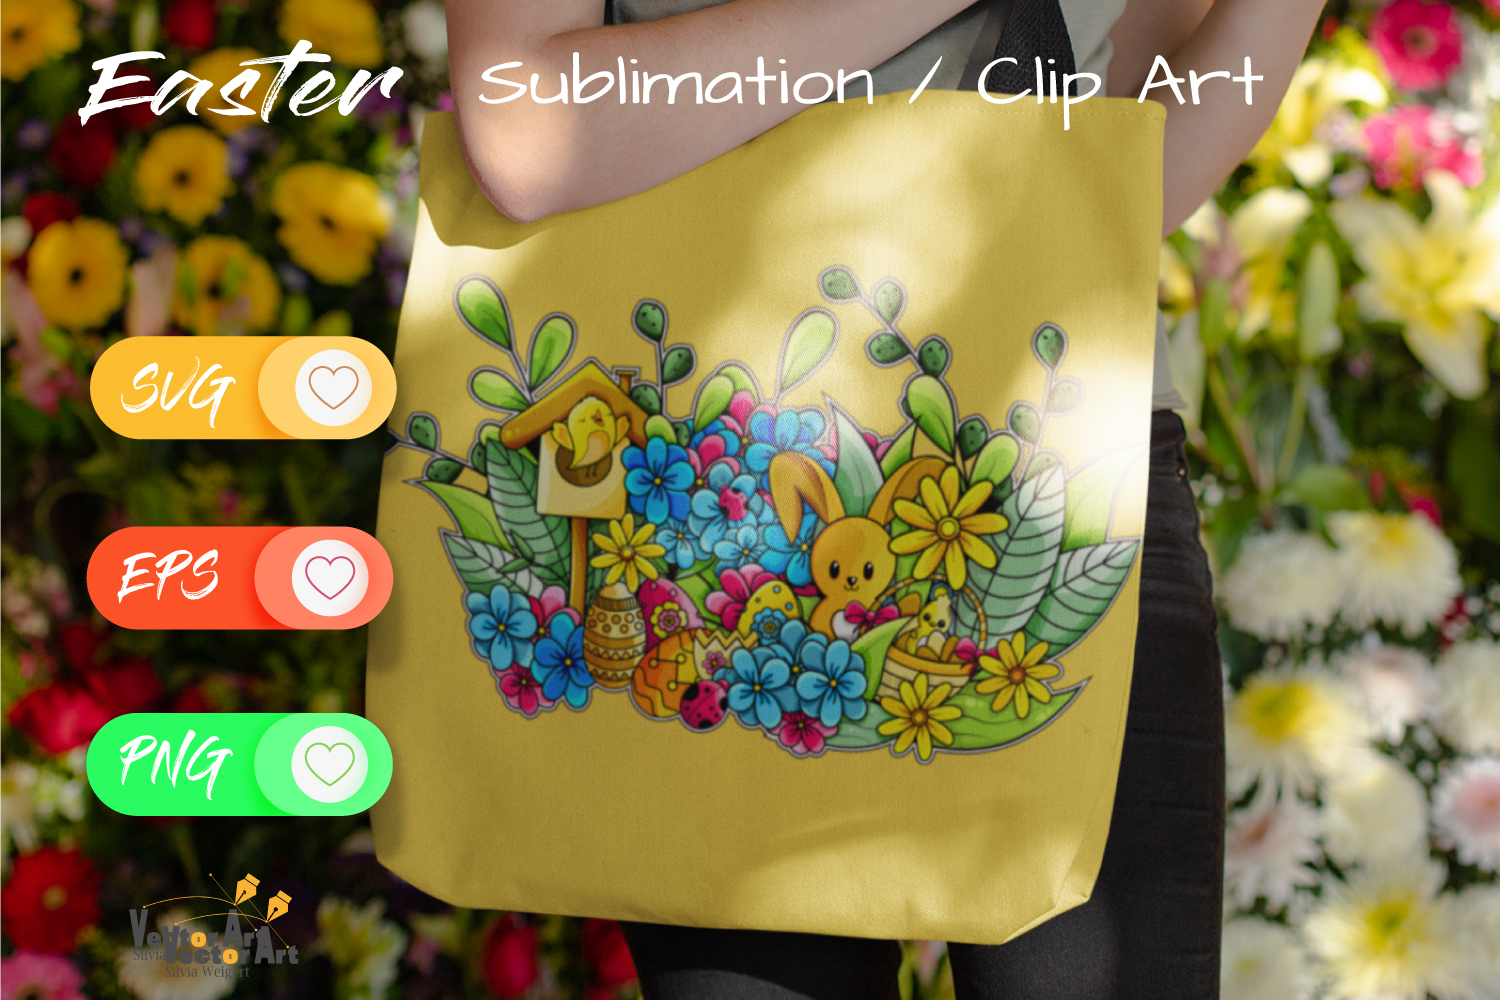 Happy Easter Illustration - Sublimation / Clip Art example image 2